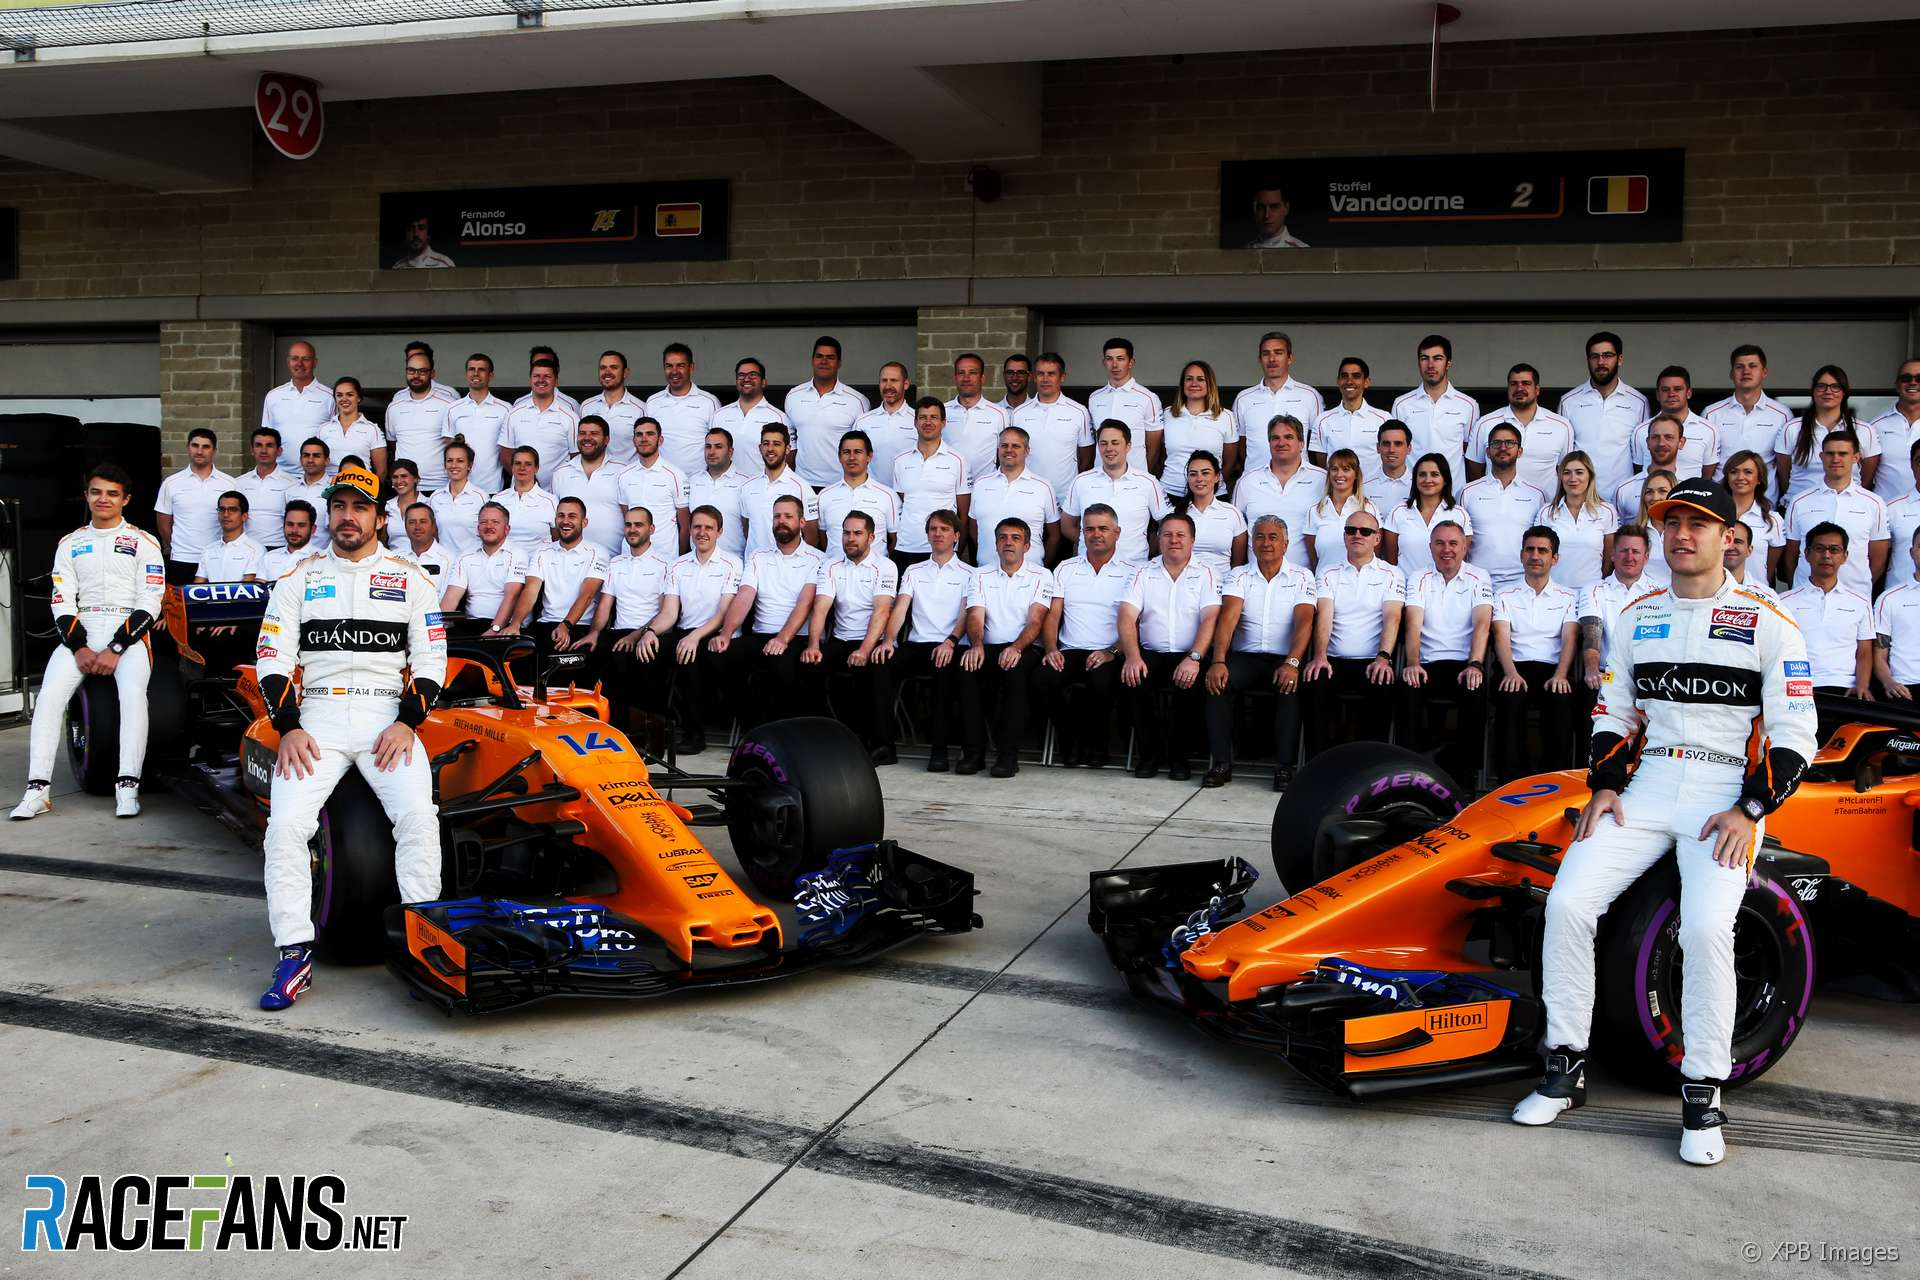 mclaren f1 team information and history